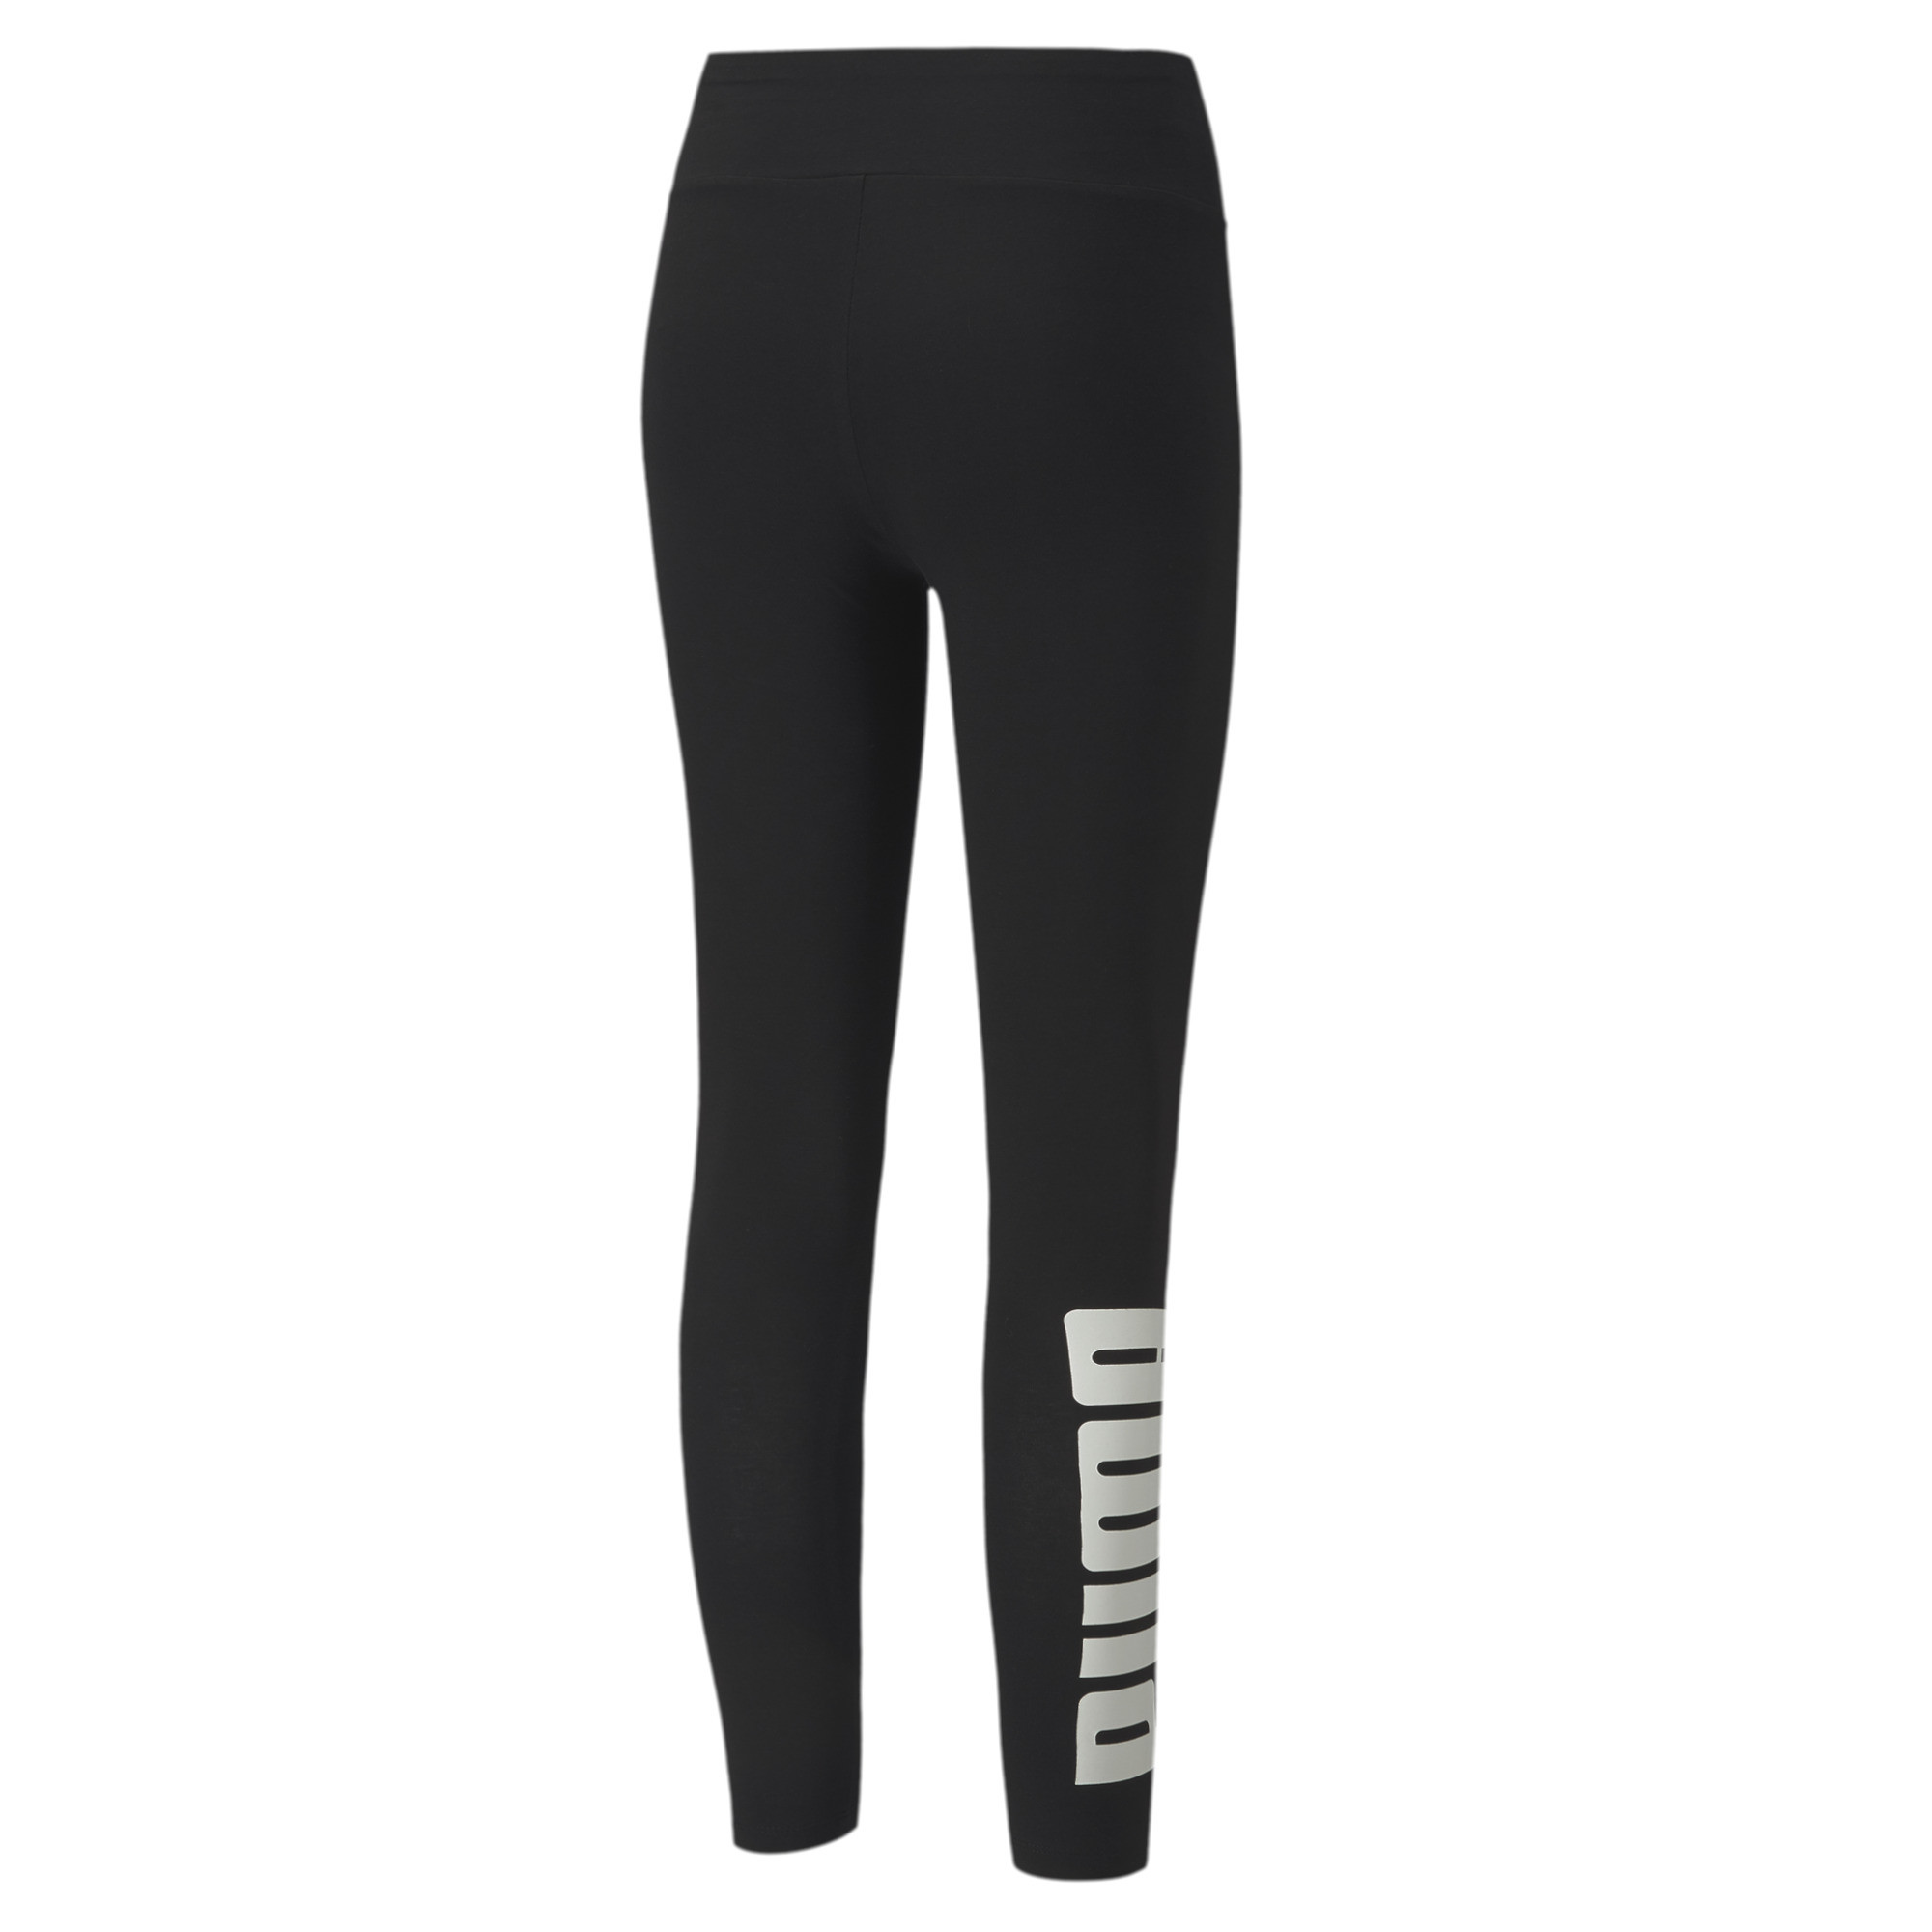 PUMA-Rebel-Women-039-s-Leggings-Women-Basics thumbnail 8